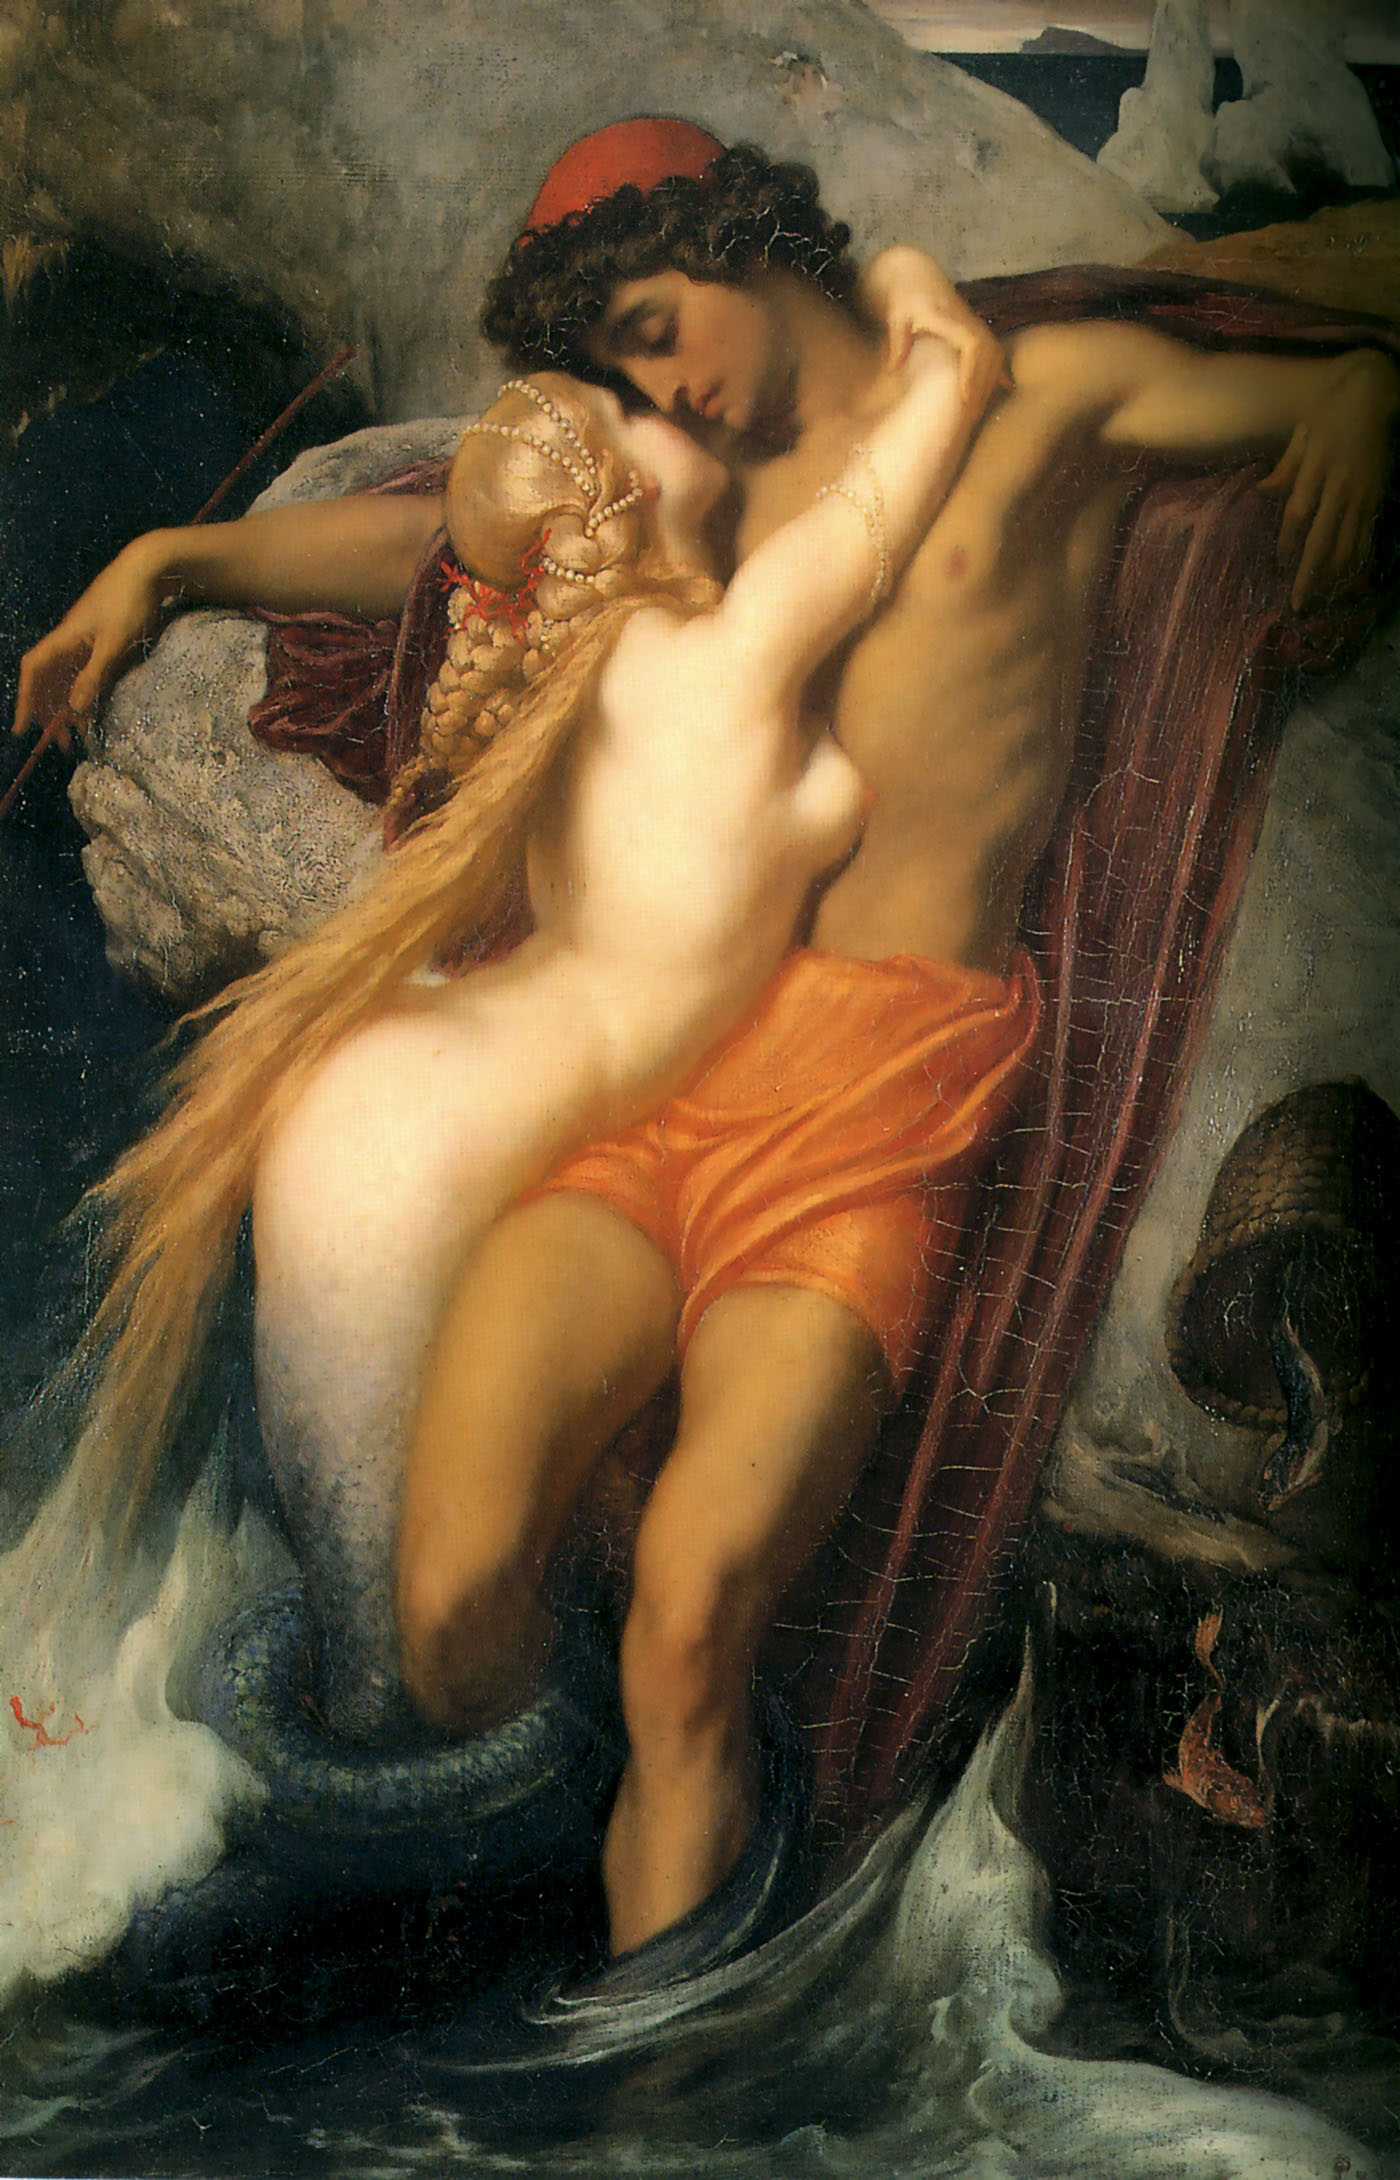 https://upload.wikimedia.org/wikipedia/commons/e/ef/Leighton-The_Fisherman_and_the_Syren-c._1856-1858.jpg